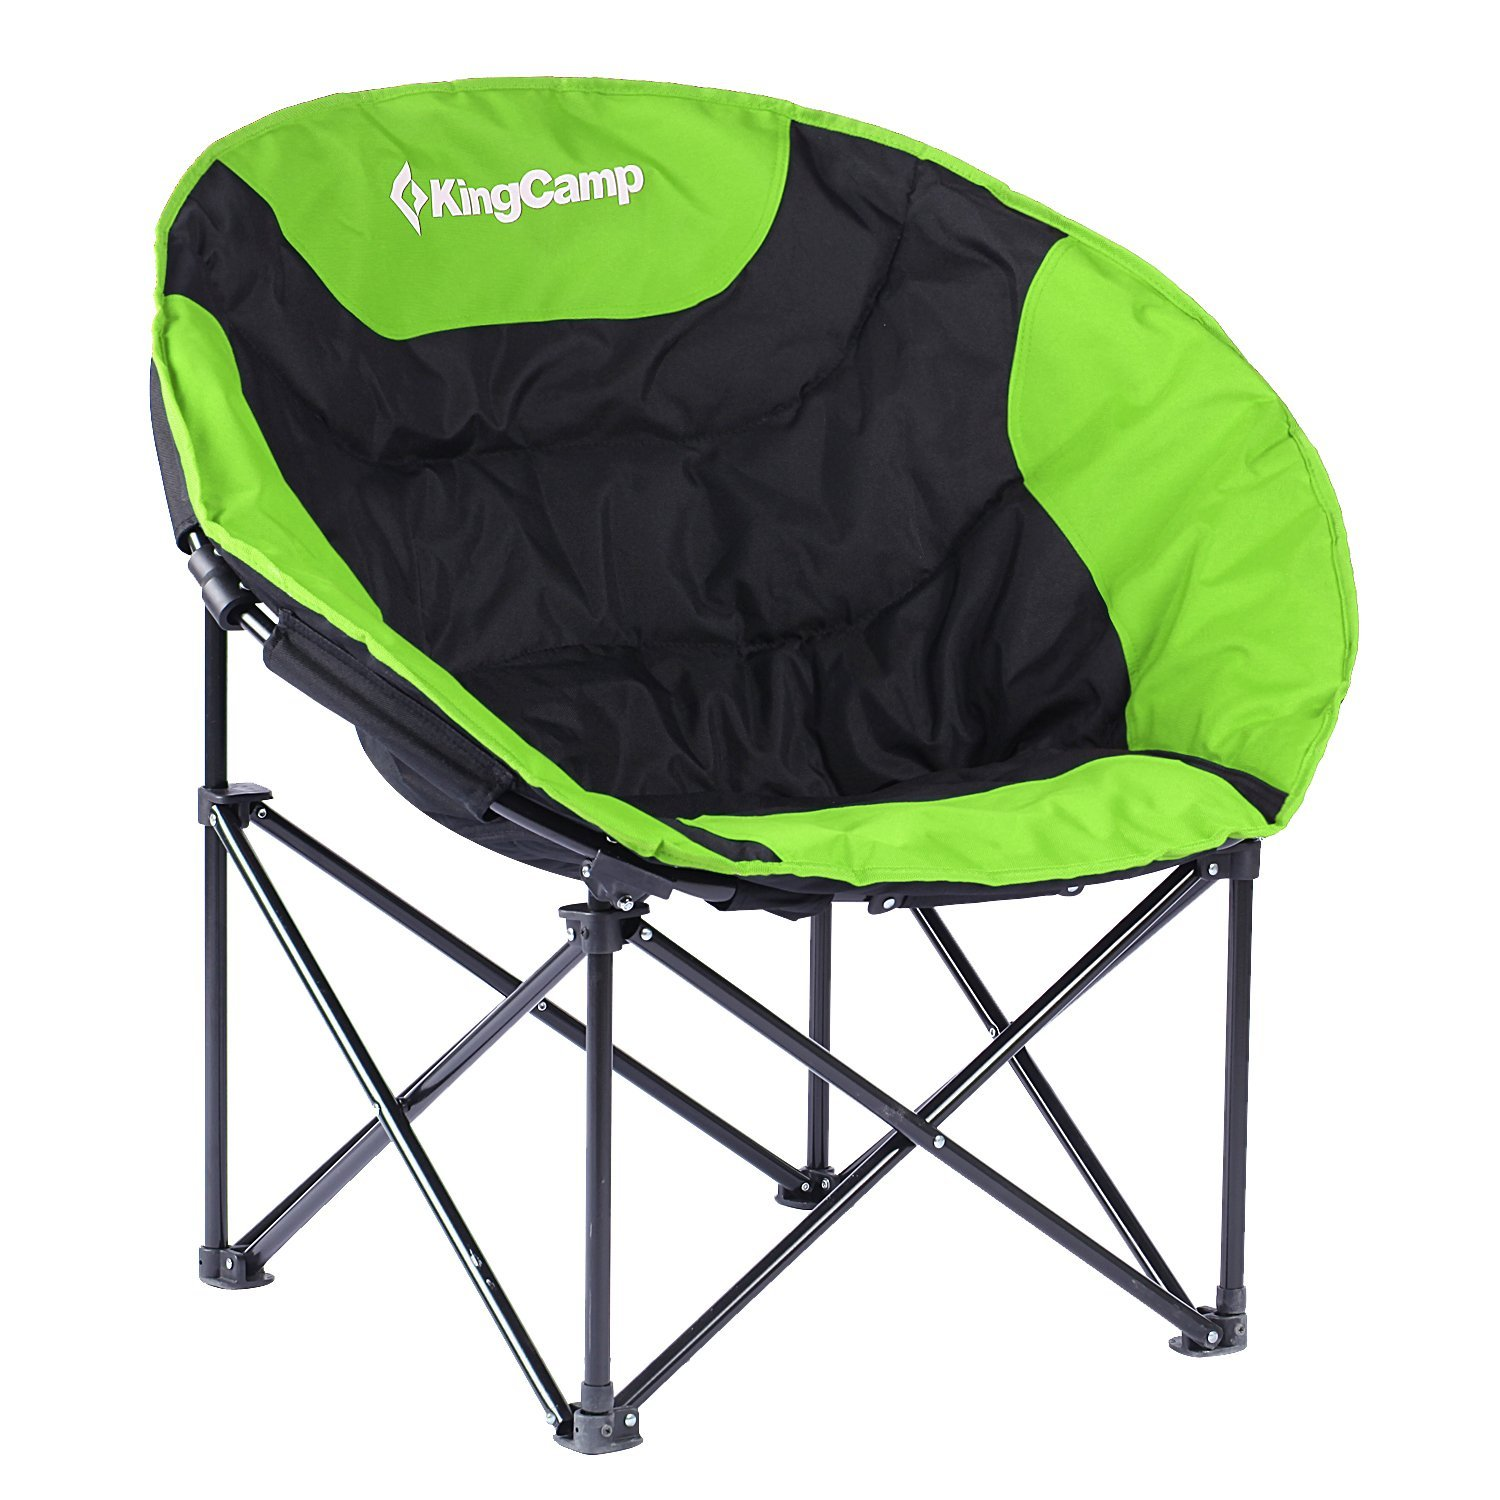 KingCamp Moon Leisure Folding Camping Chair